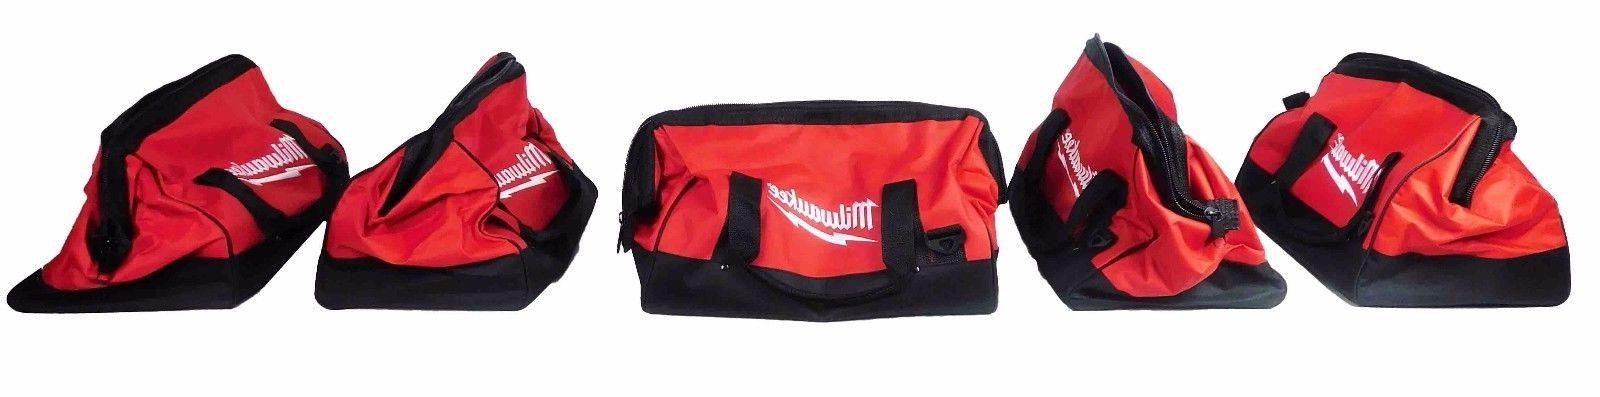 Milwaukee Duty Carrying Tool